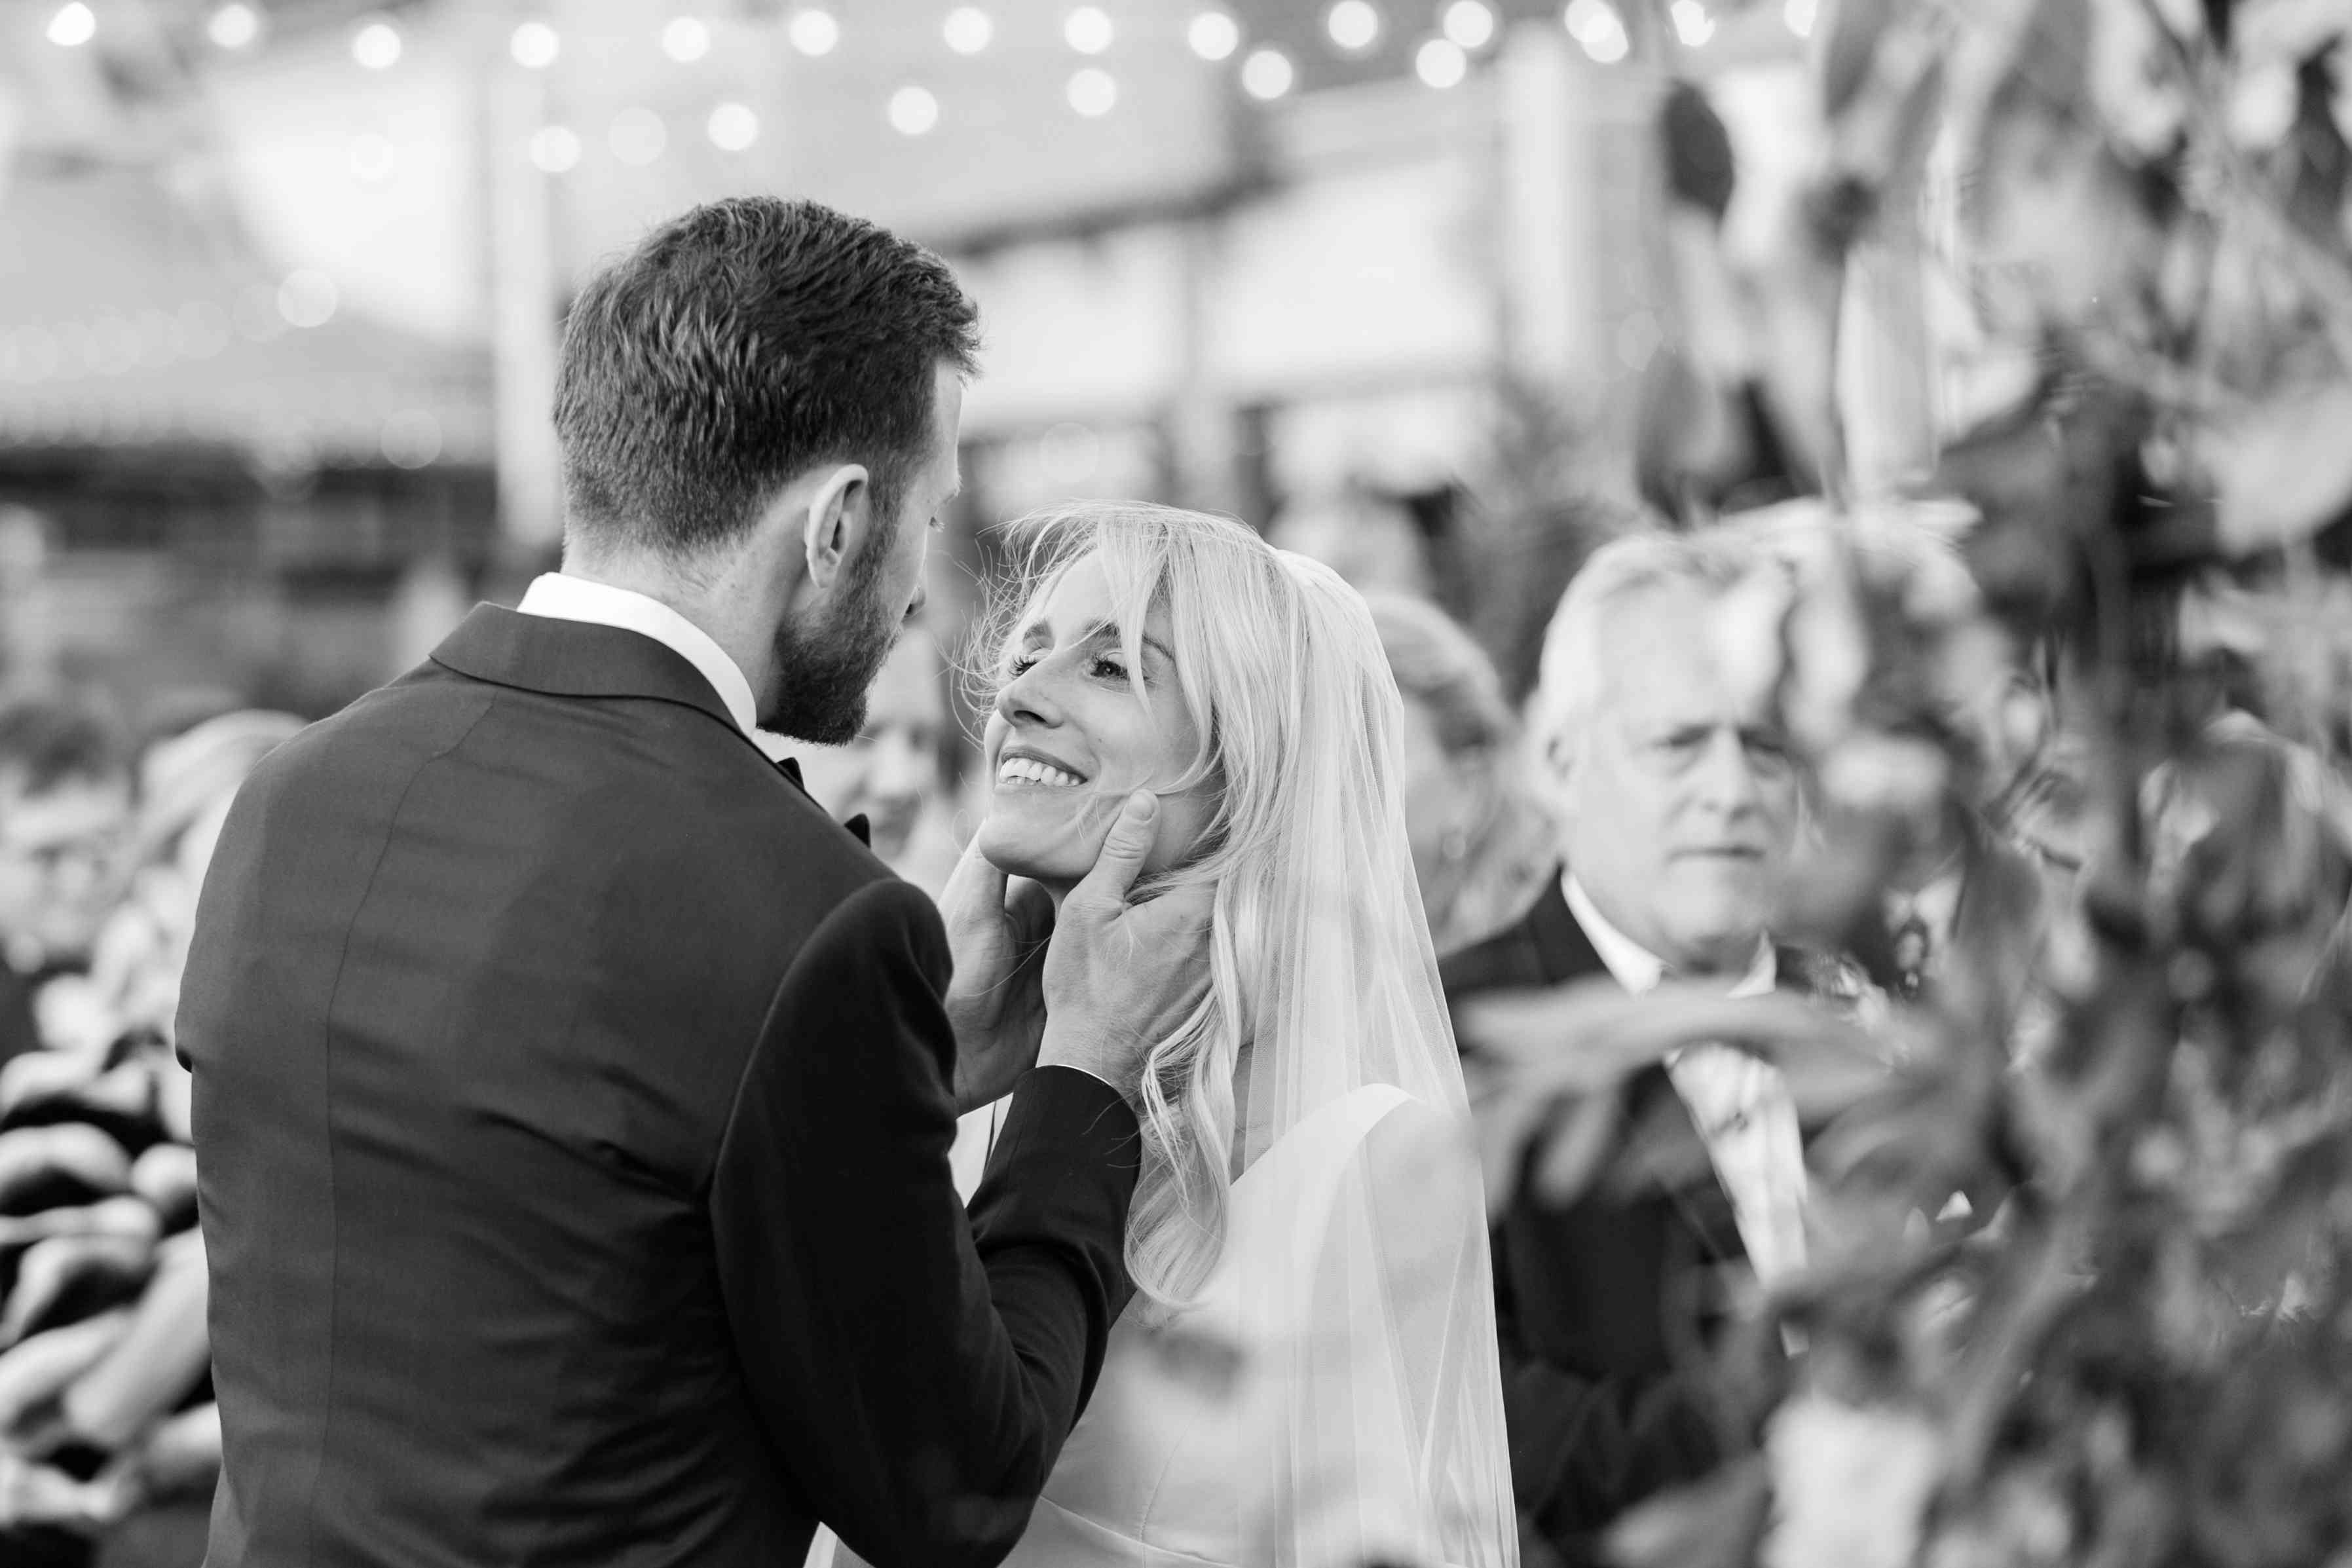 <p>couple looking at each other holding her face</p><br><br>